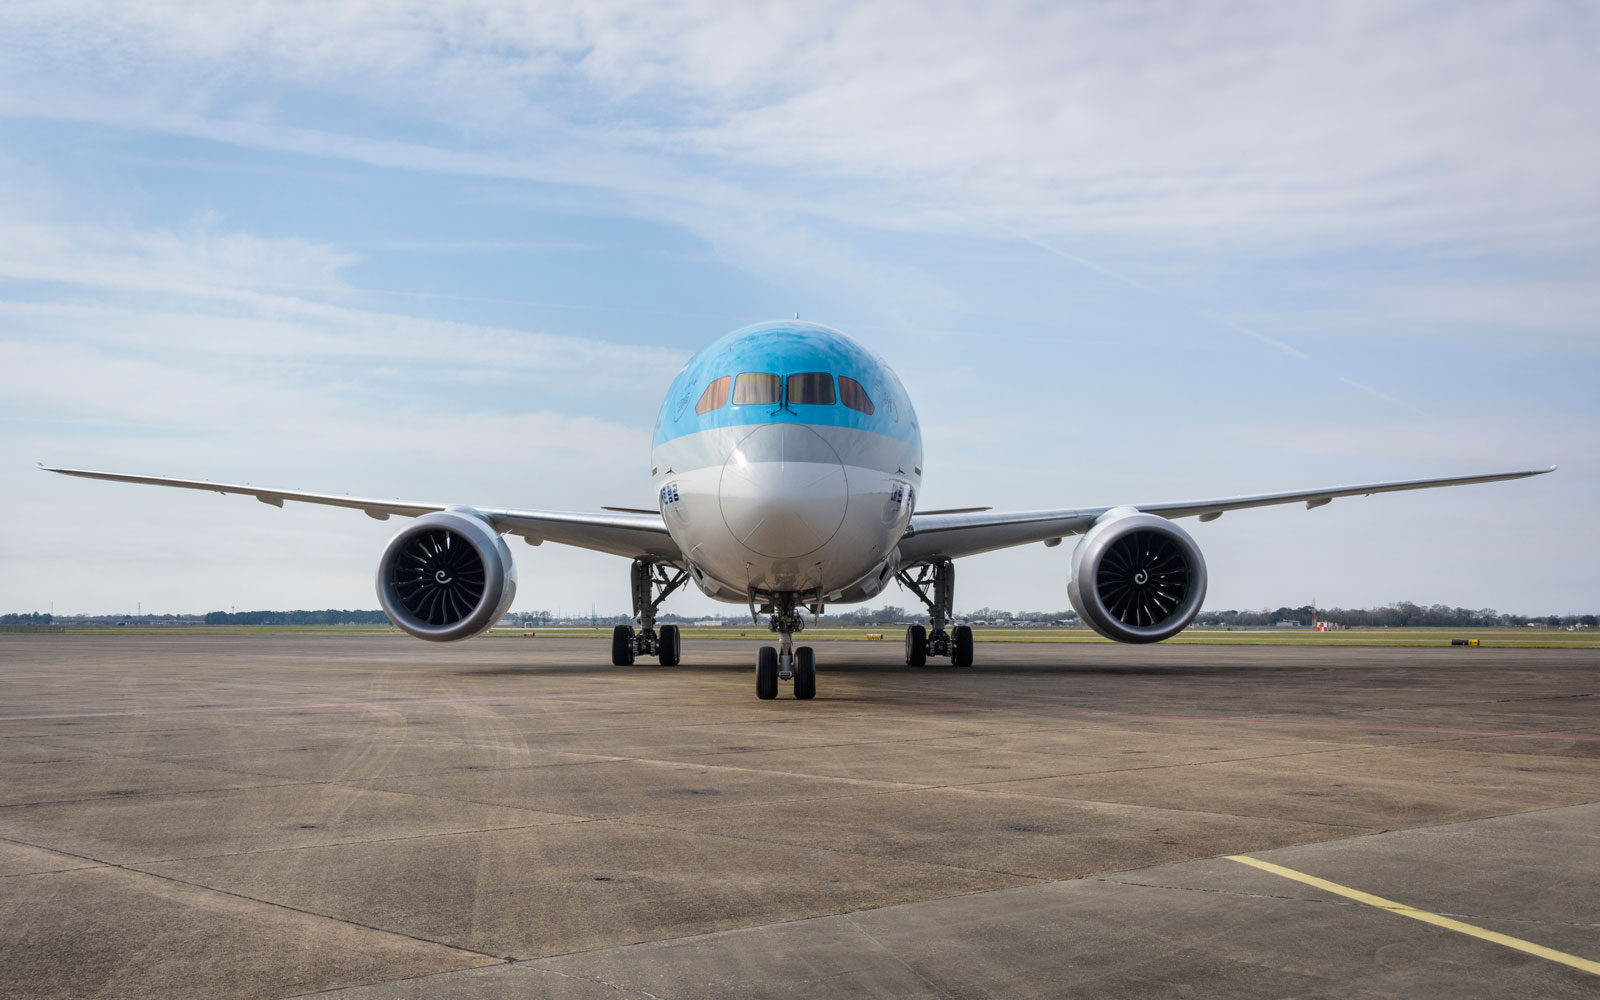 Korean Air's new Boeing 787 Dreamliner.